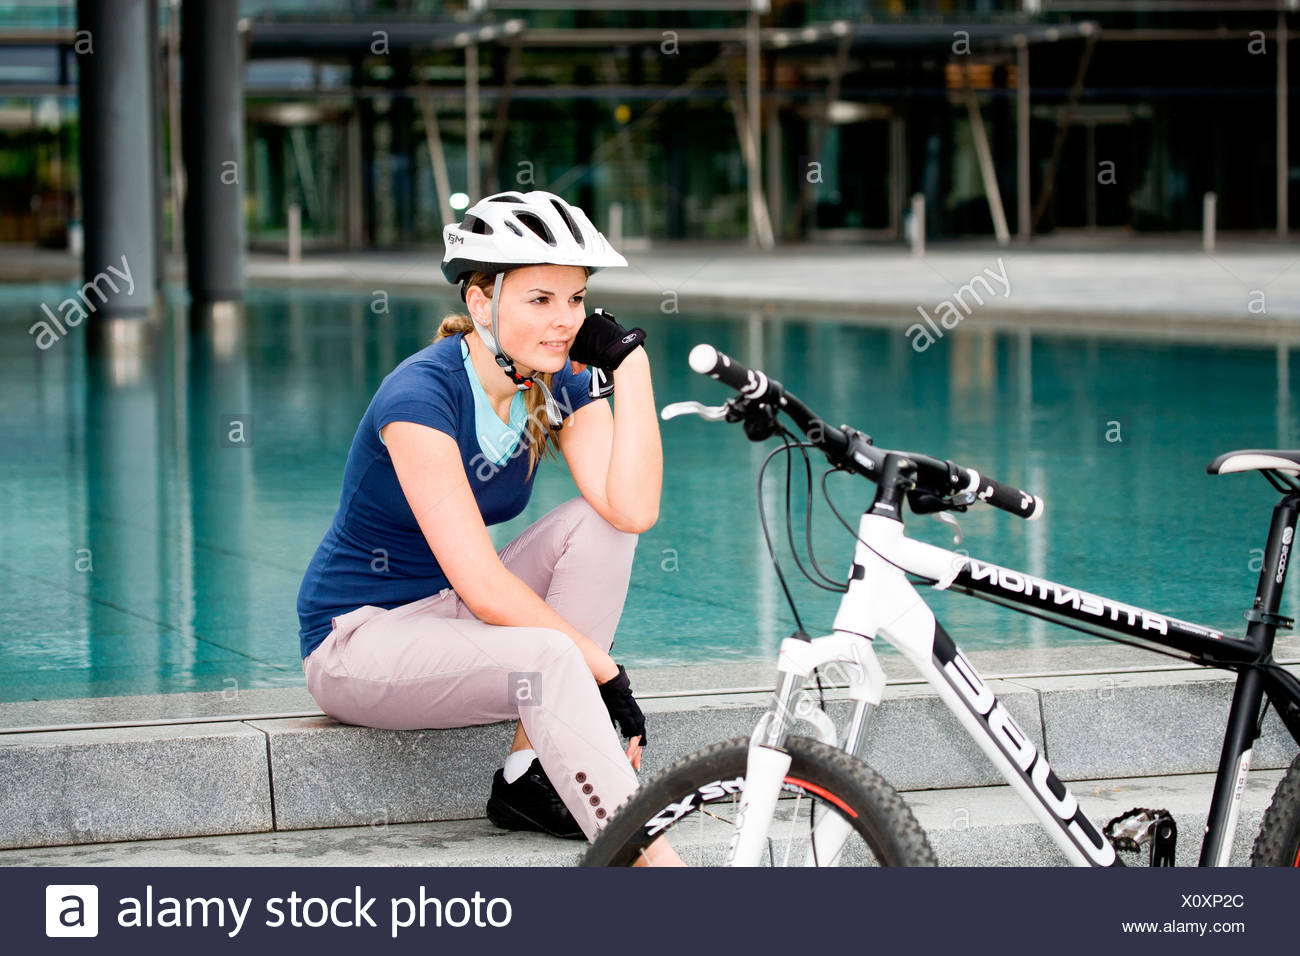 Female cyclist in an urban surrounding - Stock Image